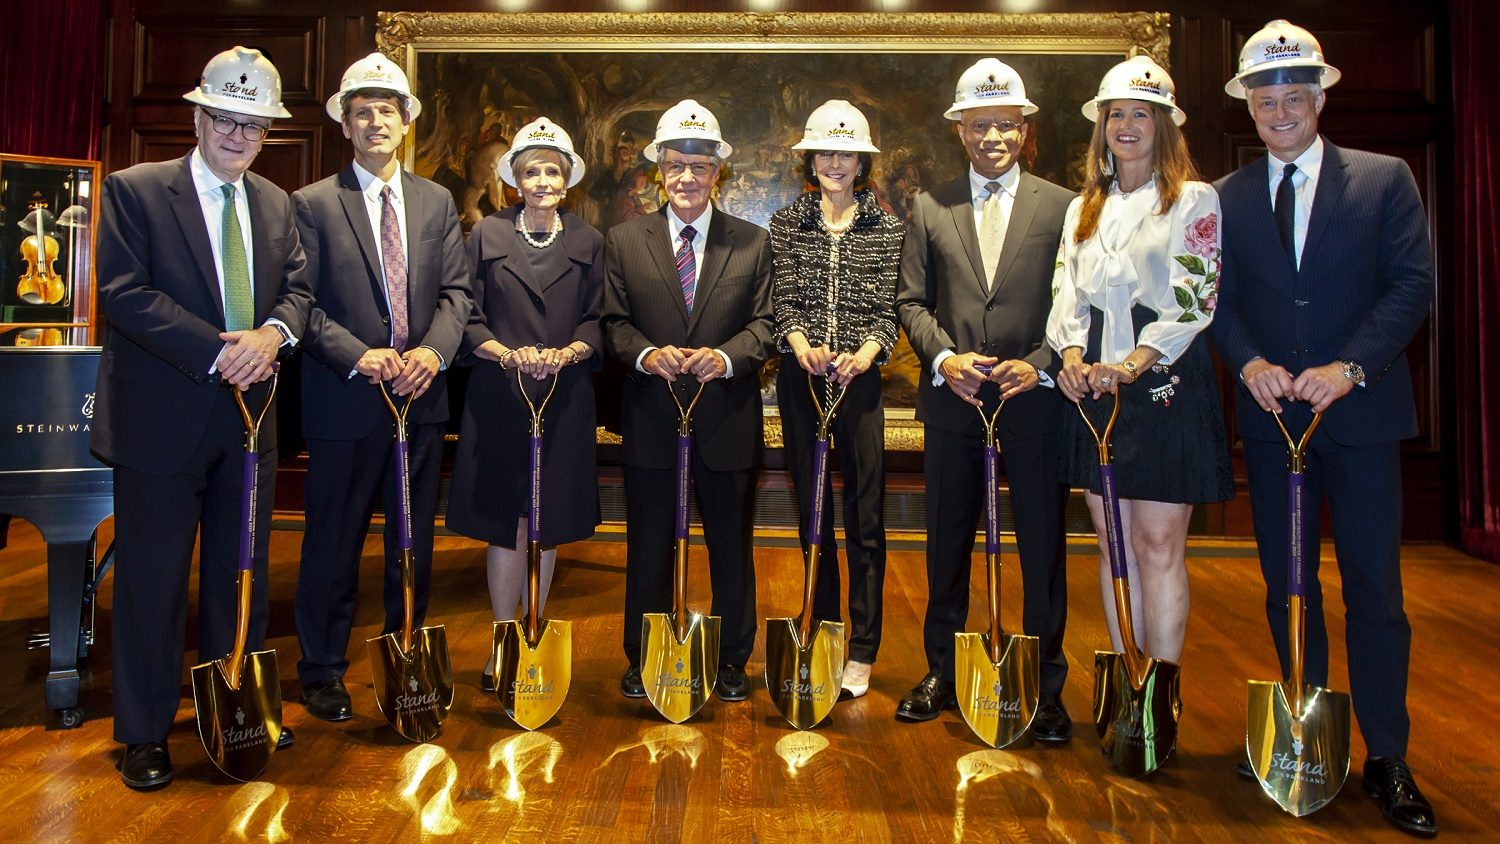 A group of people pose for the camera with shovels and hardhats